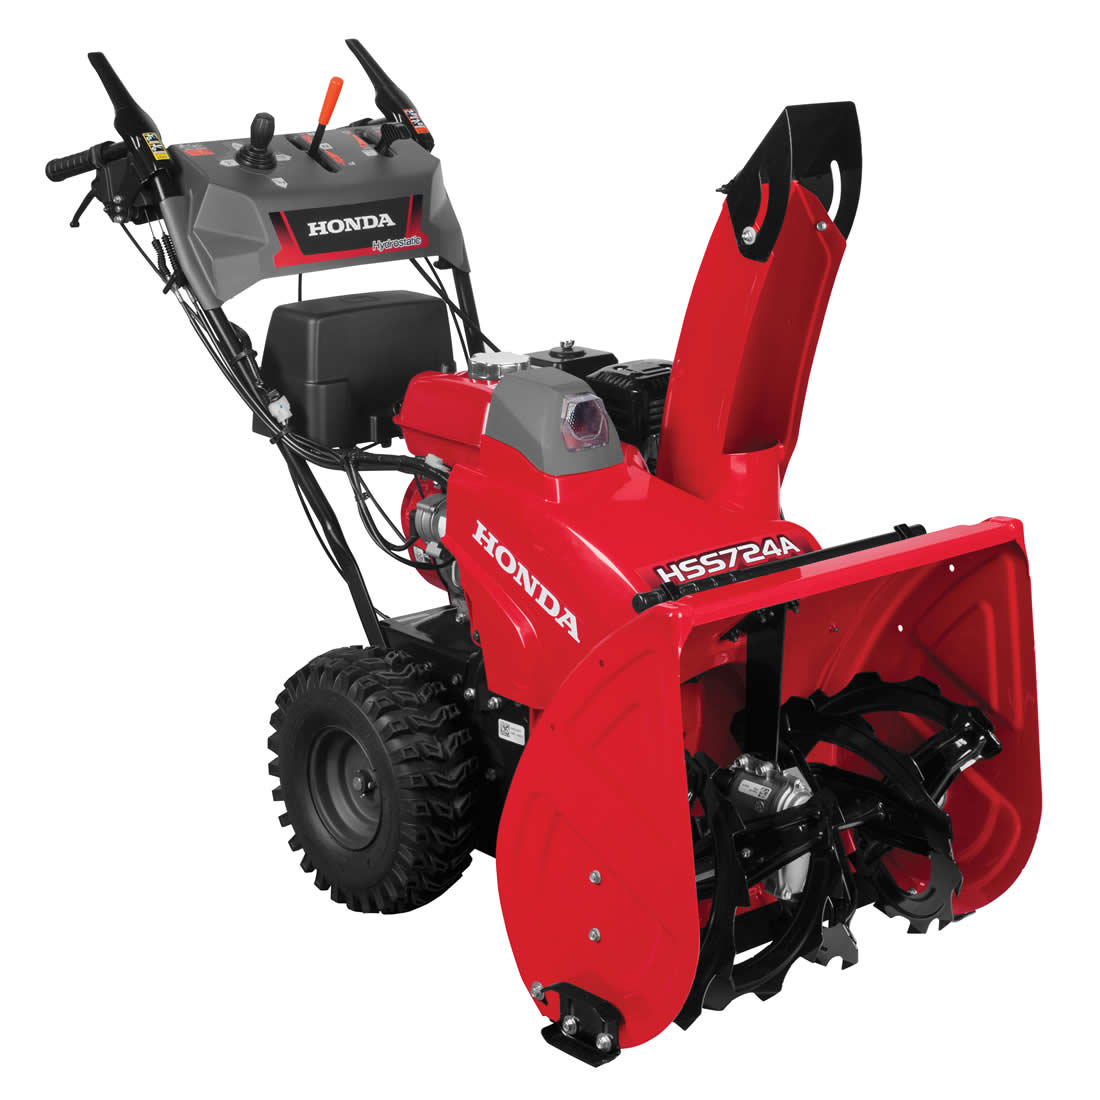 2016 Honda Power Equipment HSS724AWD in Greenwood Village, Colorado